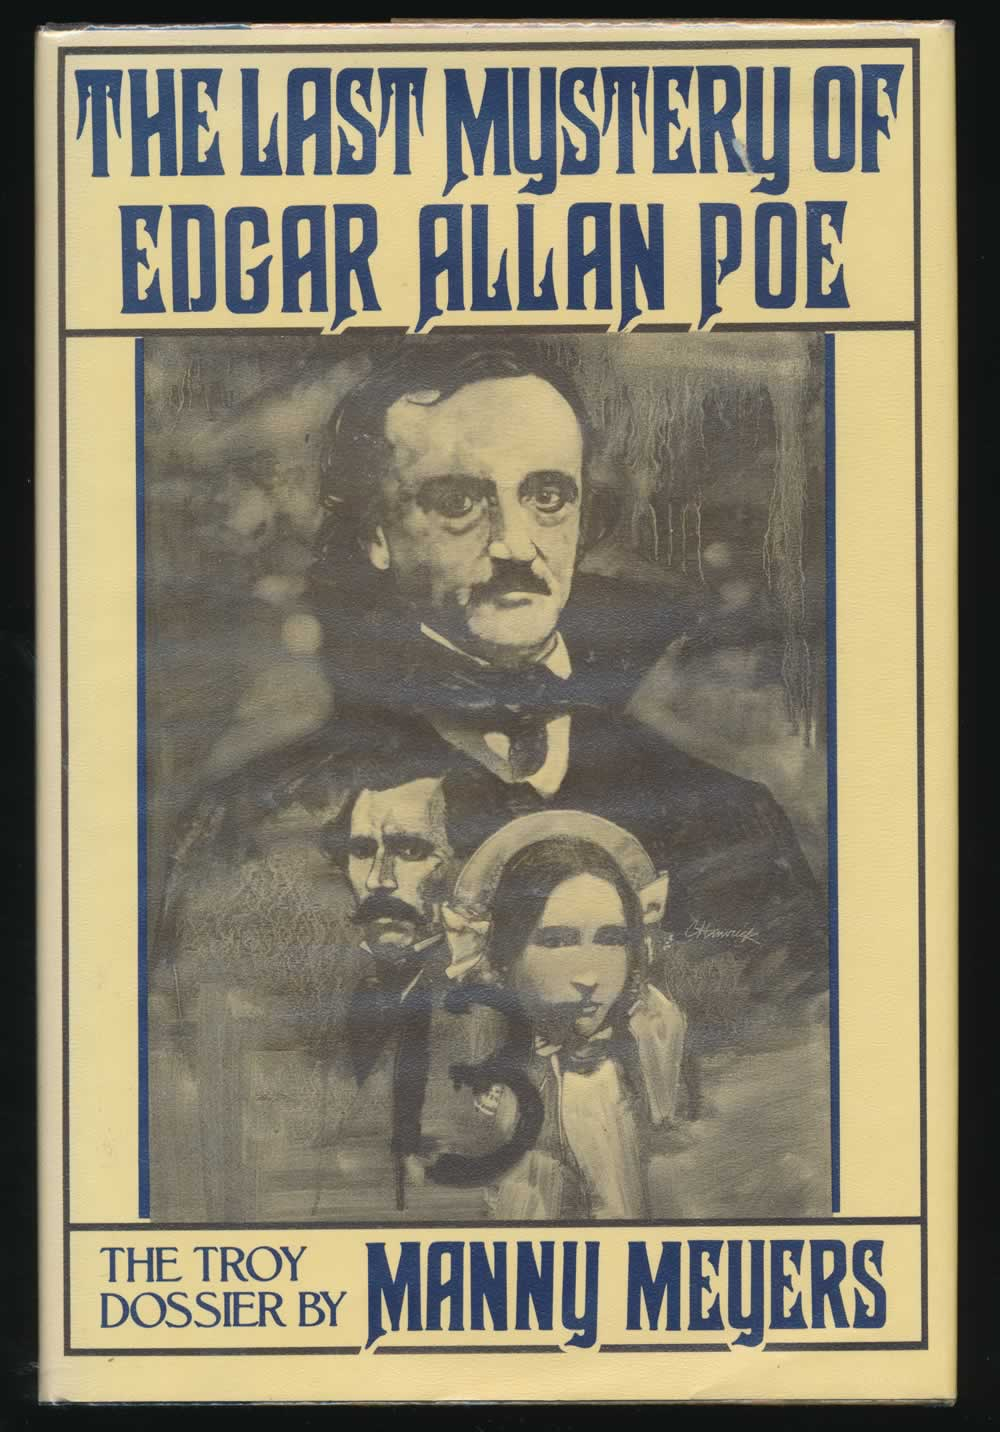 The last mystery of Edgar Allan Poe: the Troy dossier